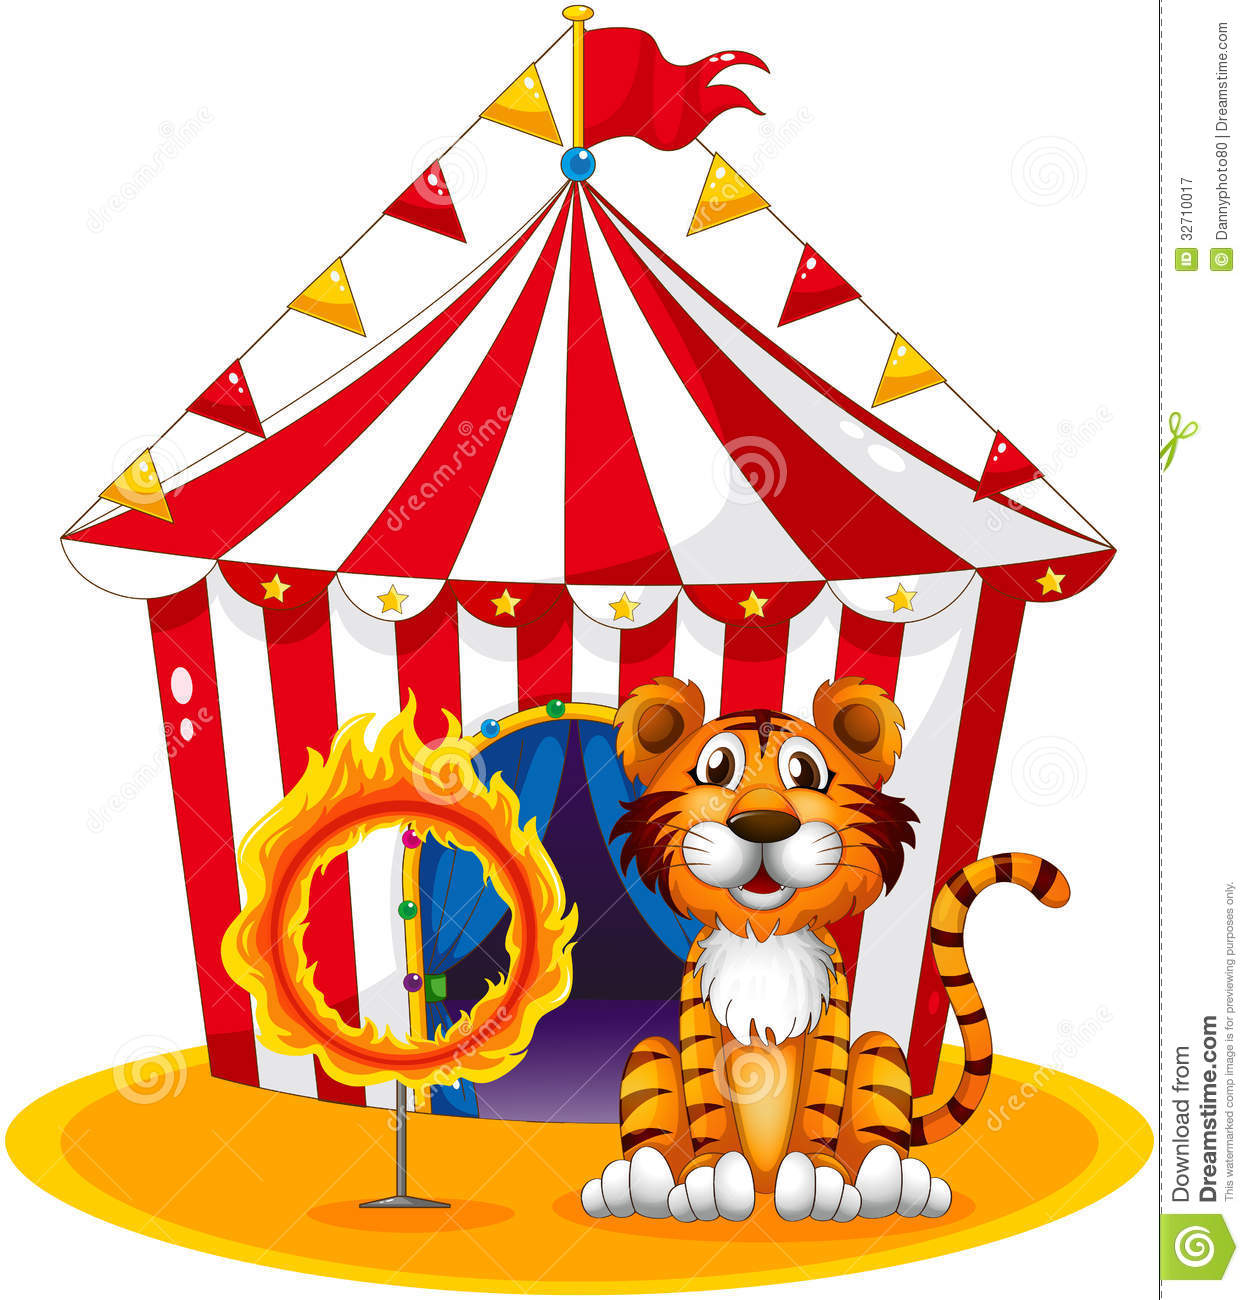 A Circus Tent At The Back Of The Tiger And The Ring Of